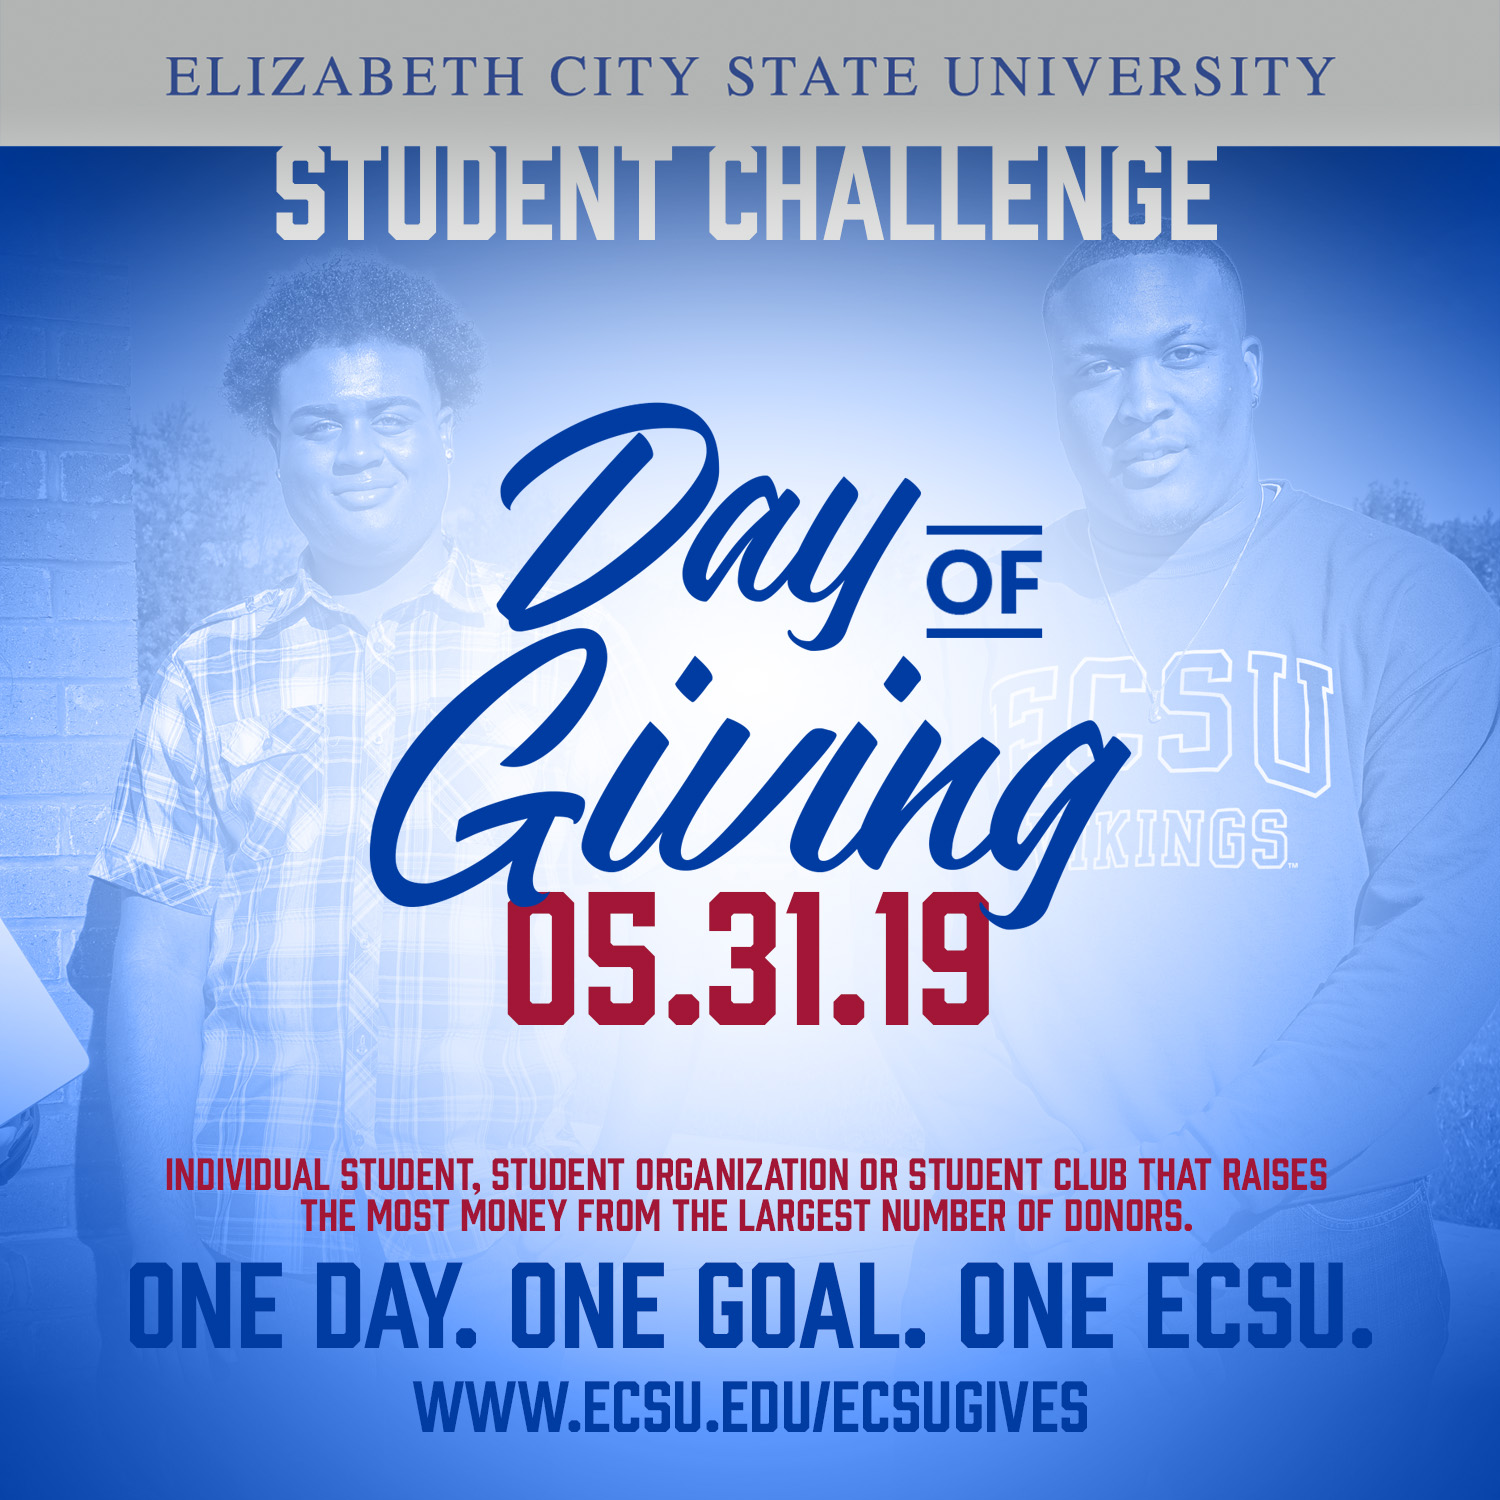 Ecsu day of giving 2019 sm student challenge